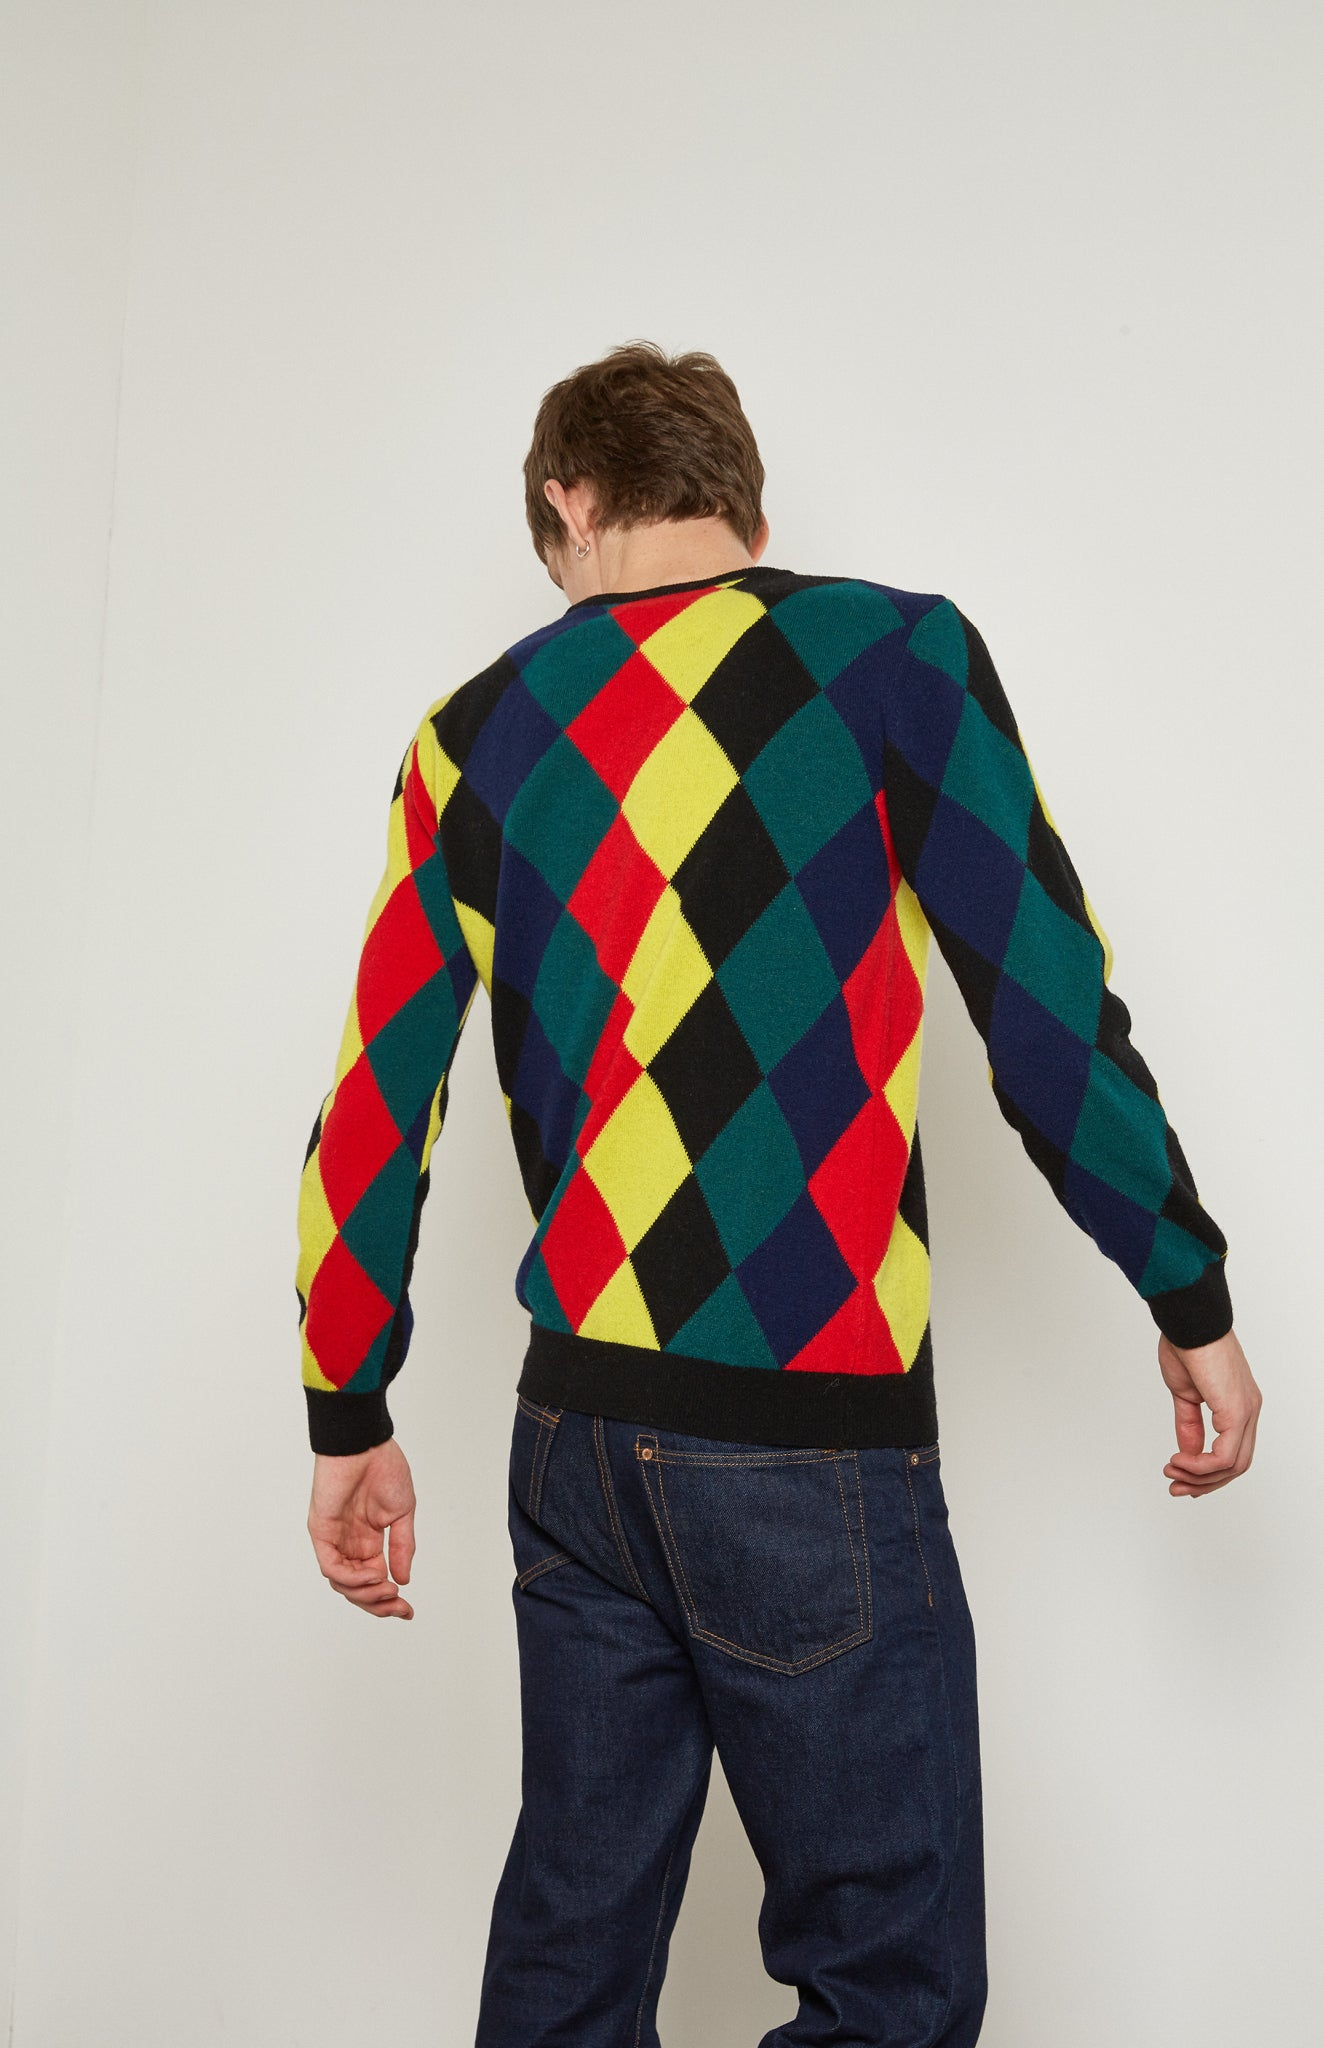 Pringle Reissued Unisex Harlequin Argyle Sweater in multi colours on men's model back